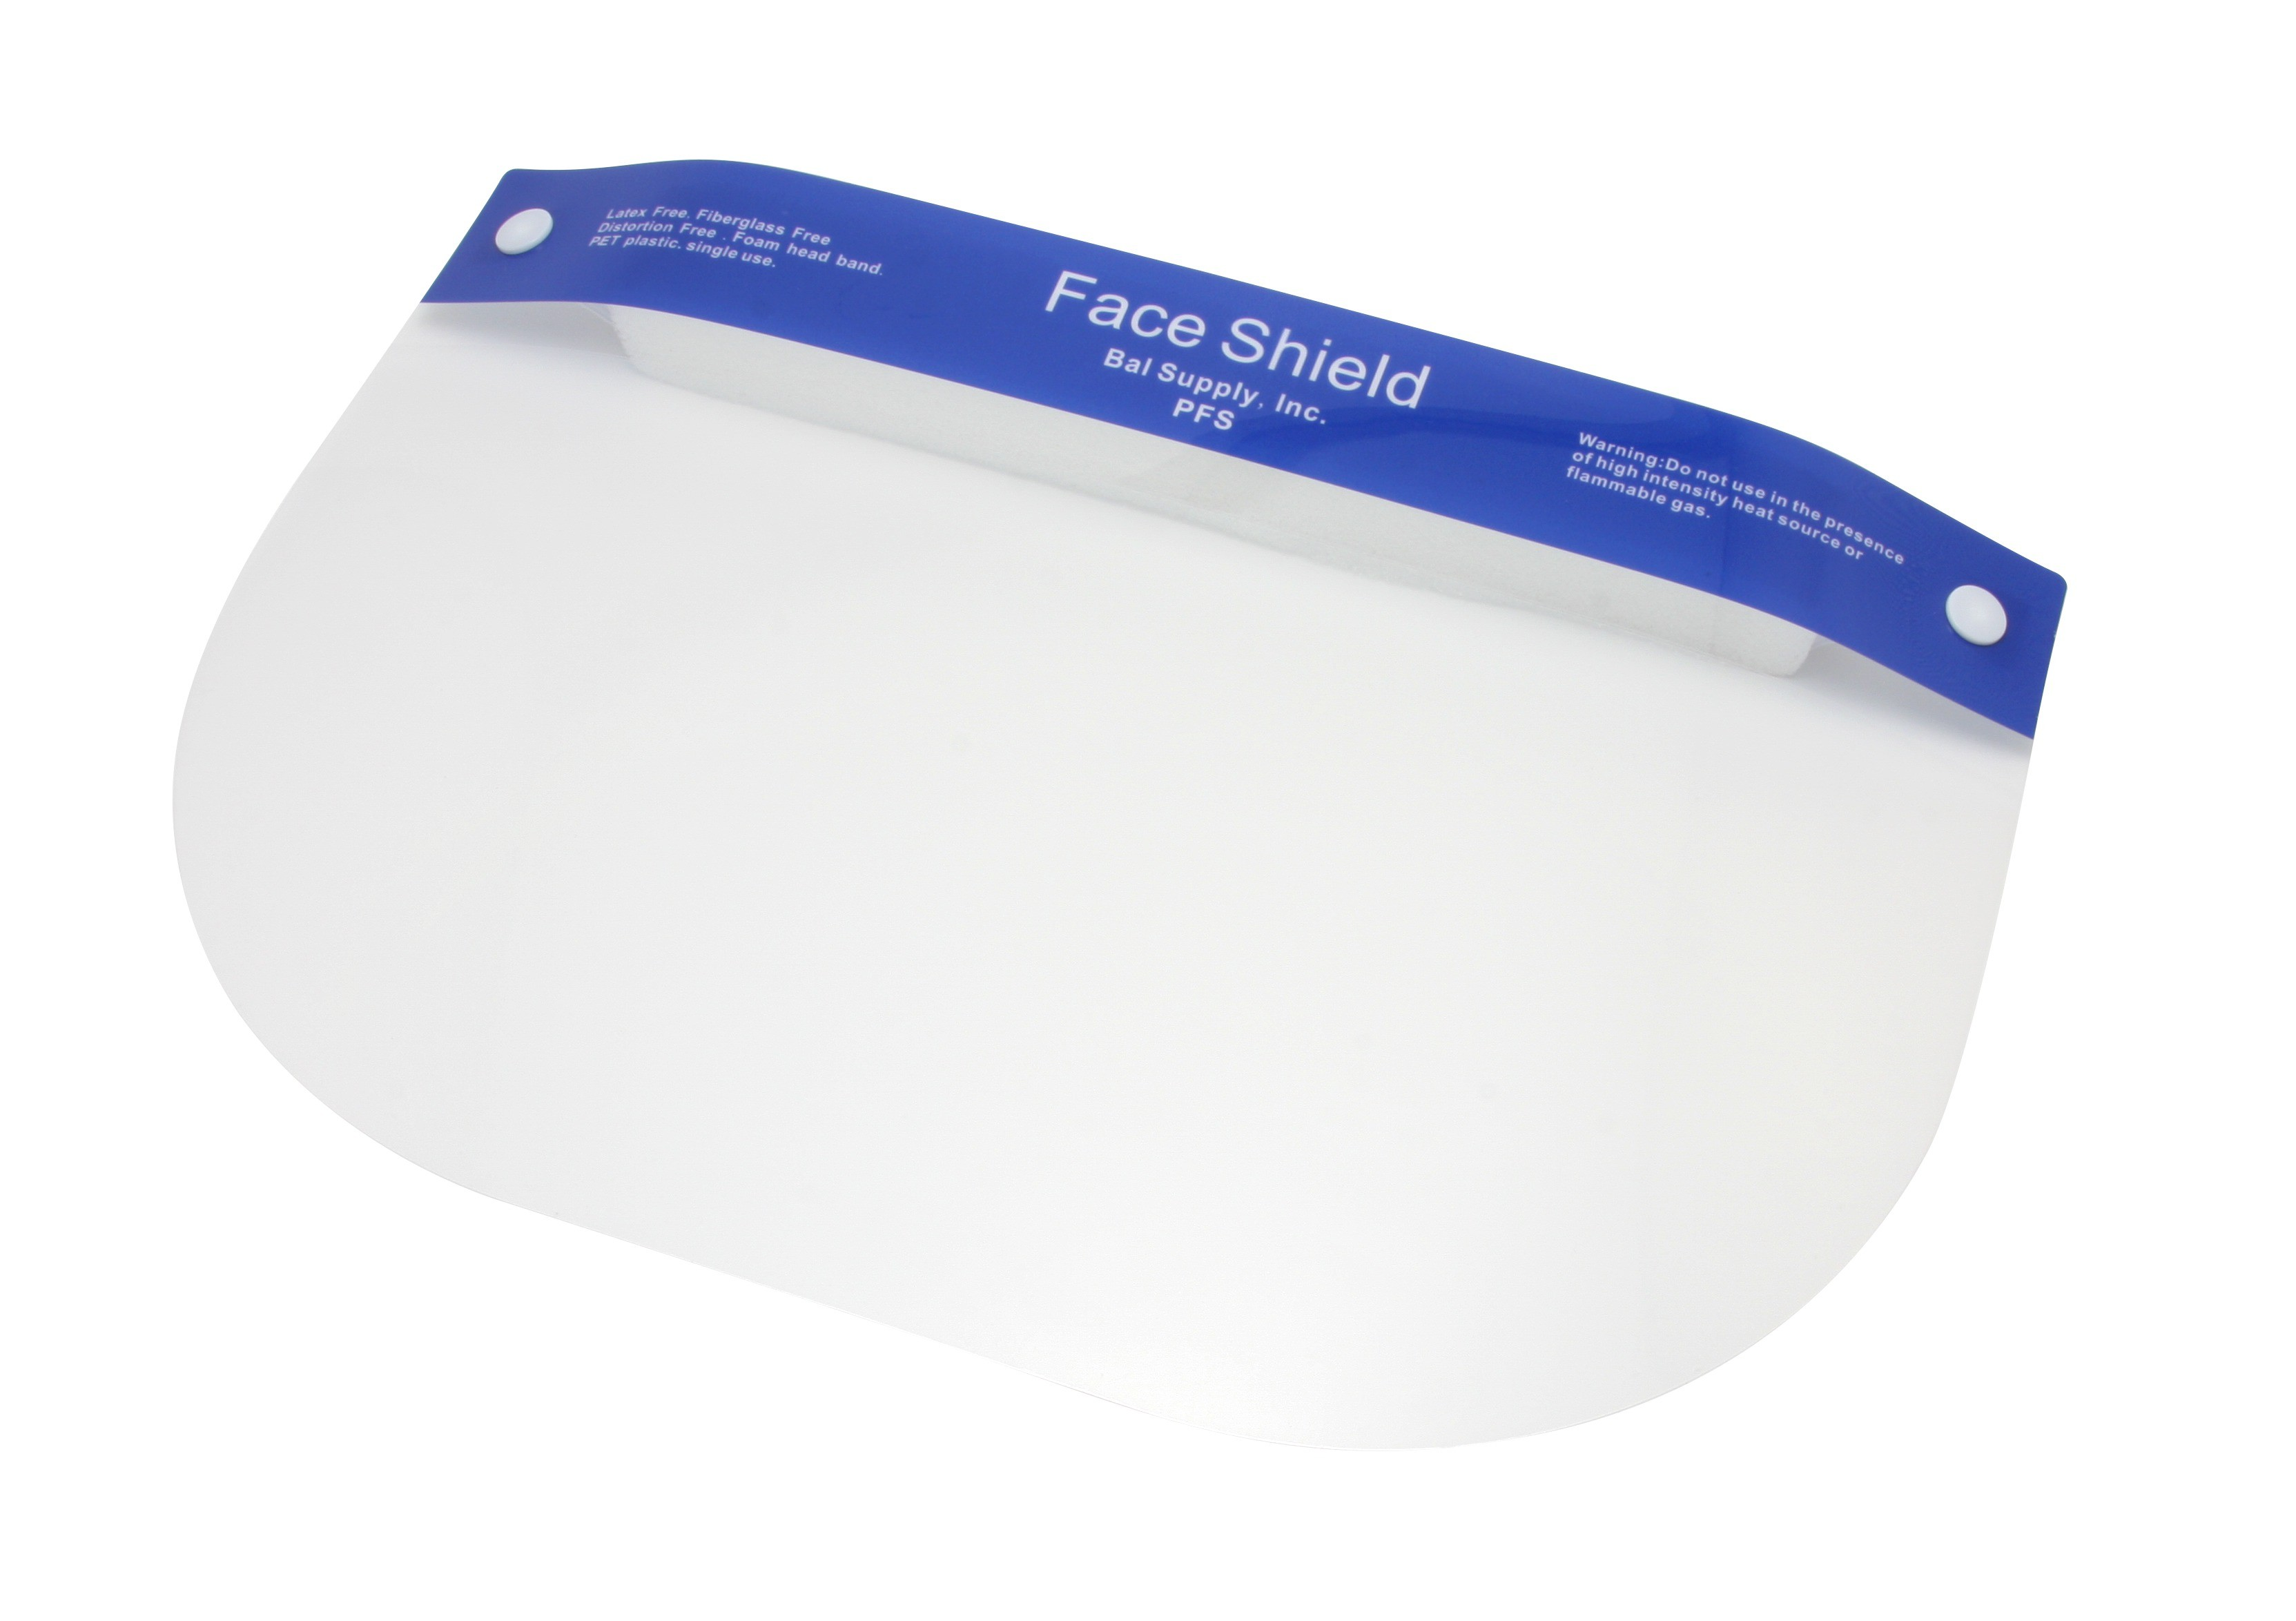 SP Bel-Art Full Coverage Face Shields with Anti-Fog; CE, Anti-Static, Latex-Free (Pack of 20)